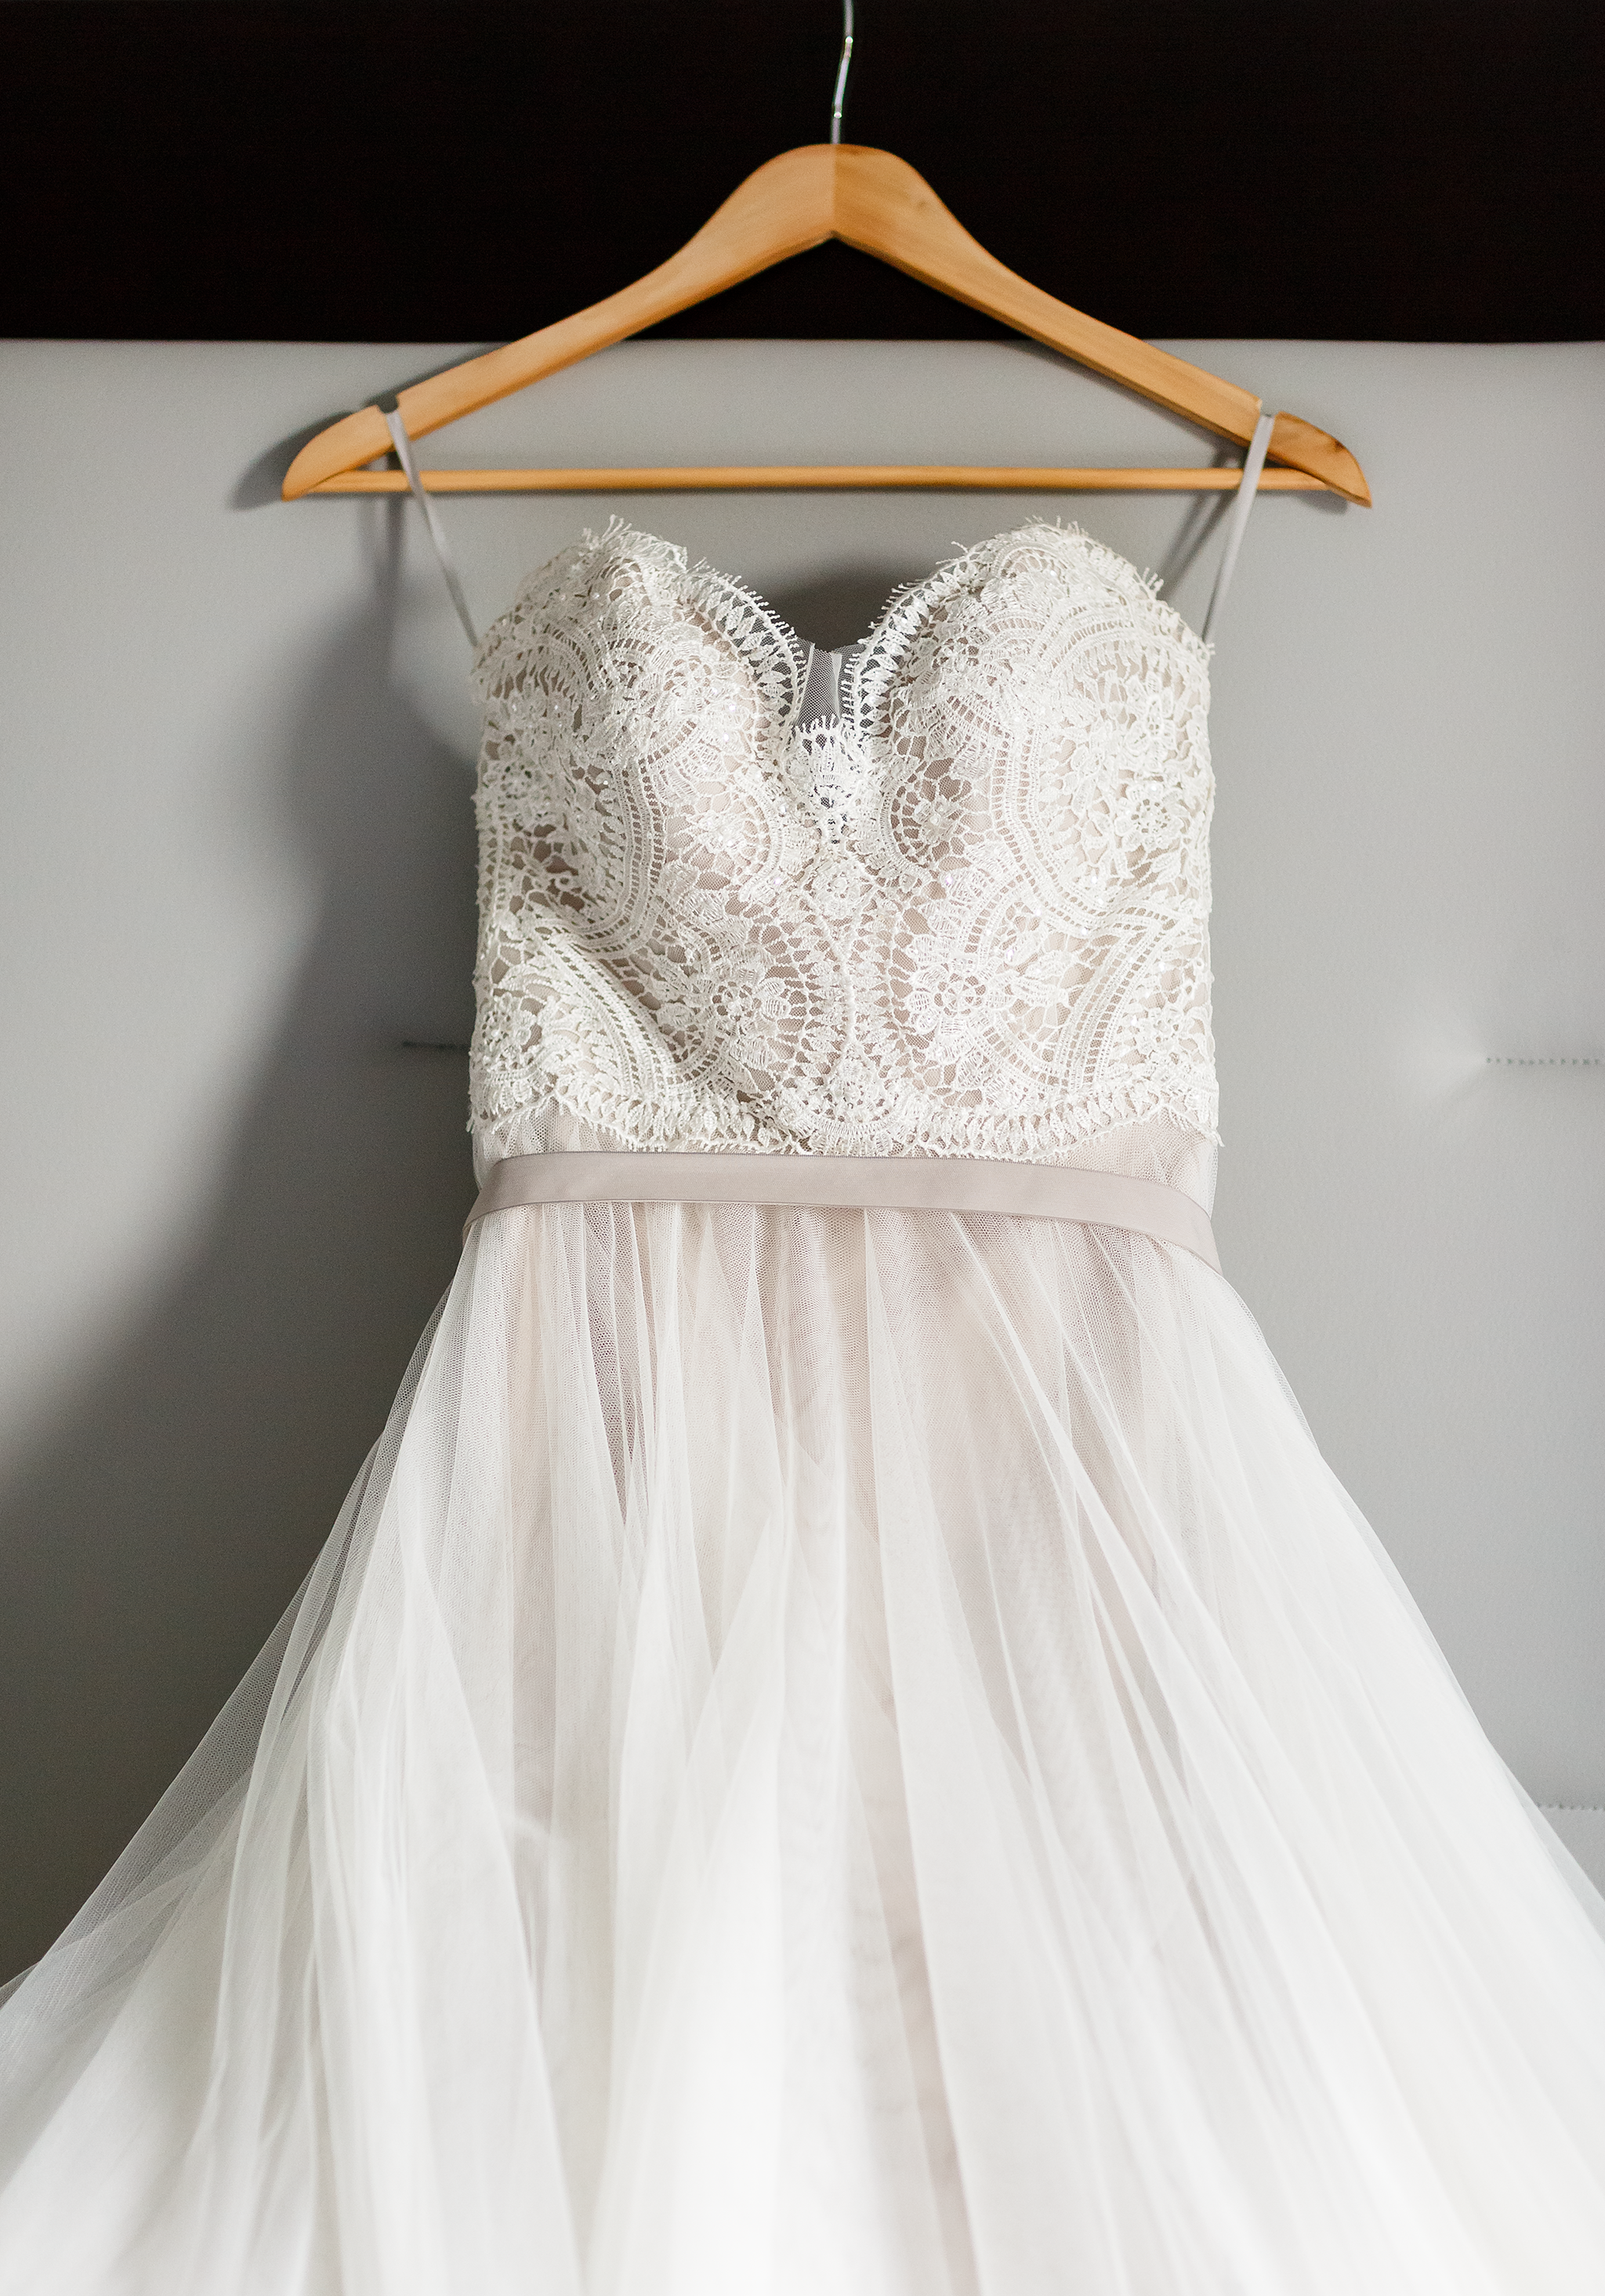 Atlanta_wedding_photographer_Leah Eversley_photography_wedding_dress.png.png